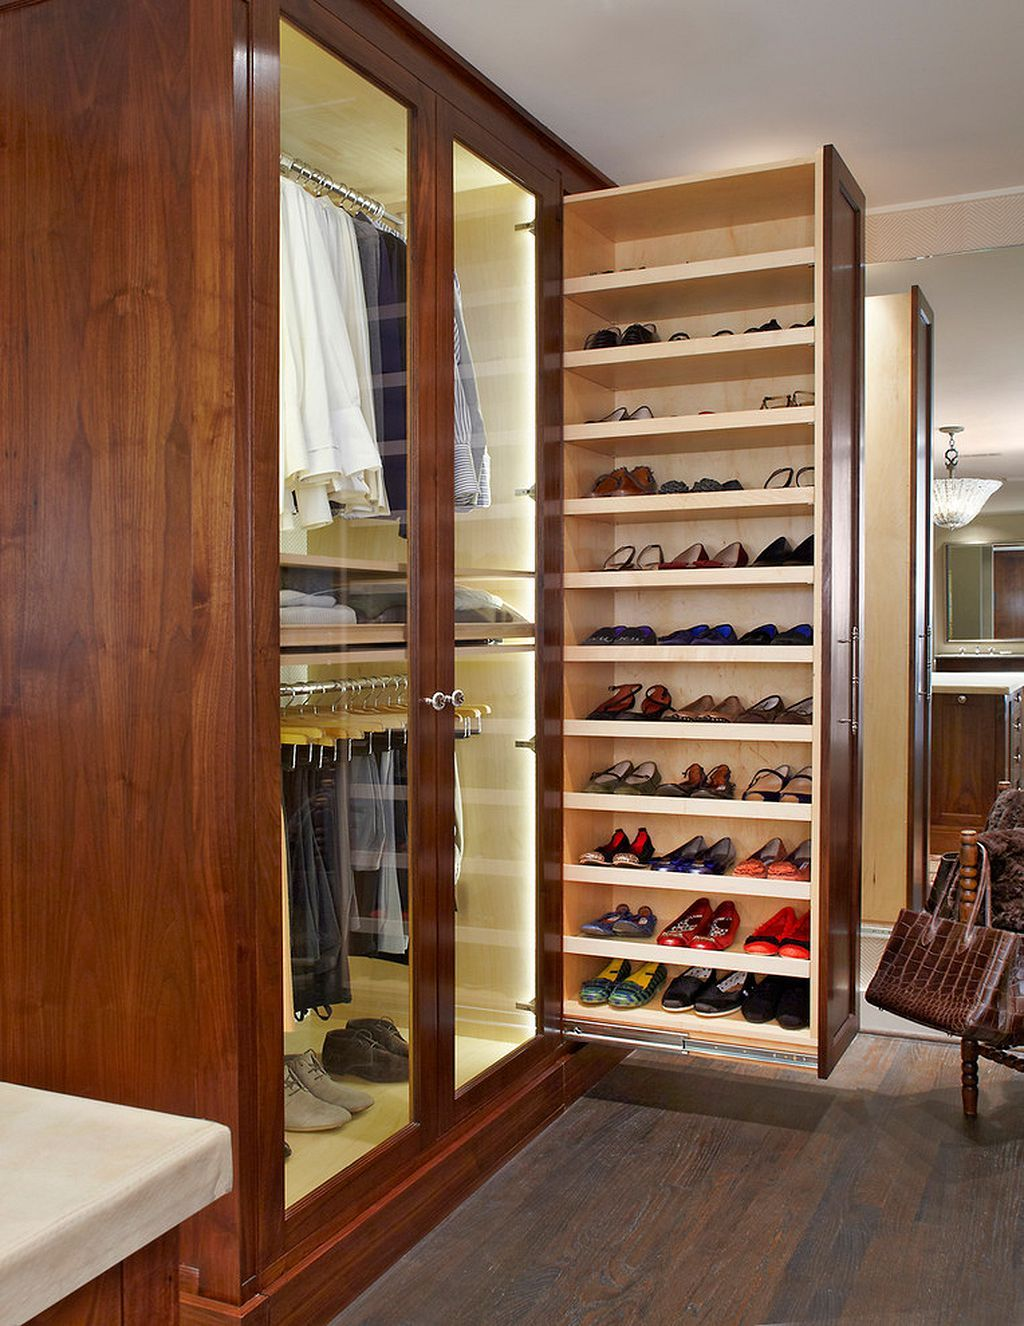 20 space saving shoe rack ideas furniture bedroom - Space saving closet ideas ...